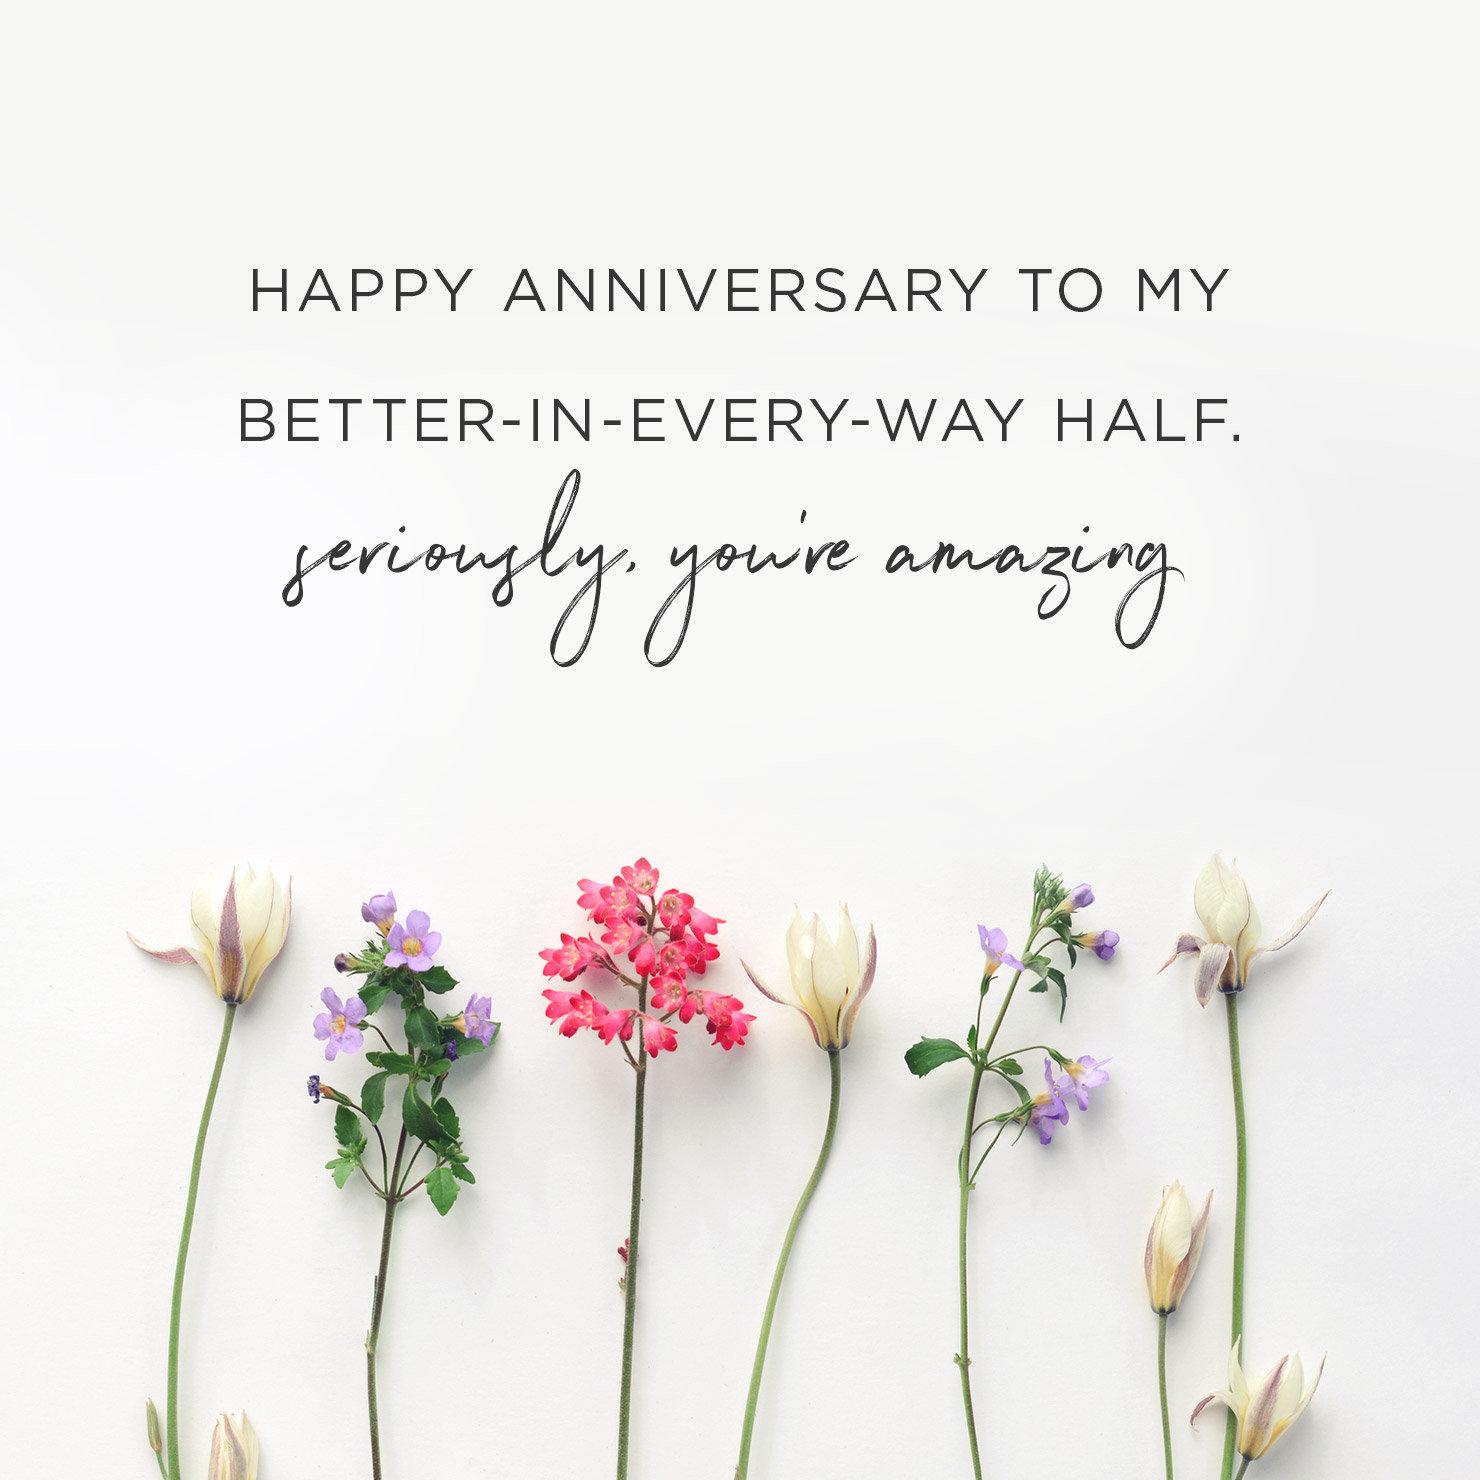 sweet anniversary message